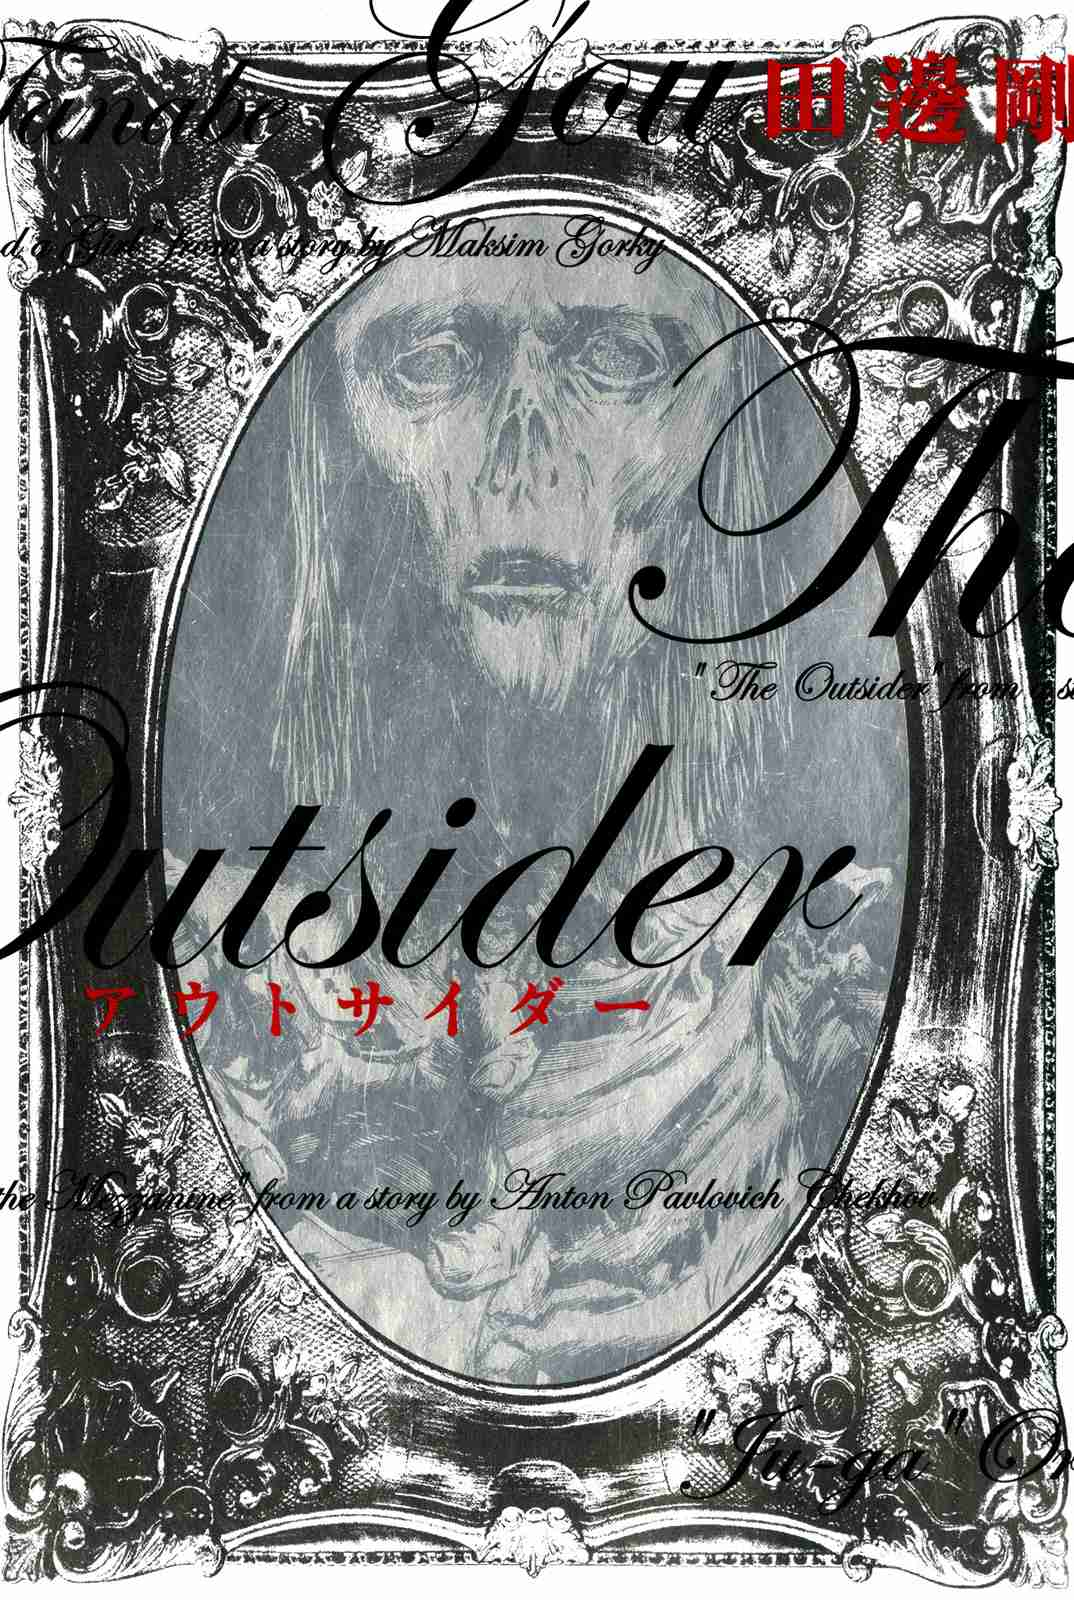 H.P. Lovecraft's The Outsider and Other Stories Ch. 1 The Outsider